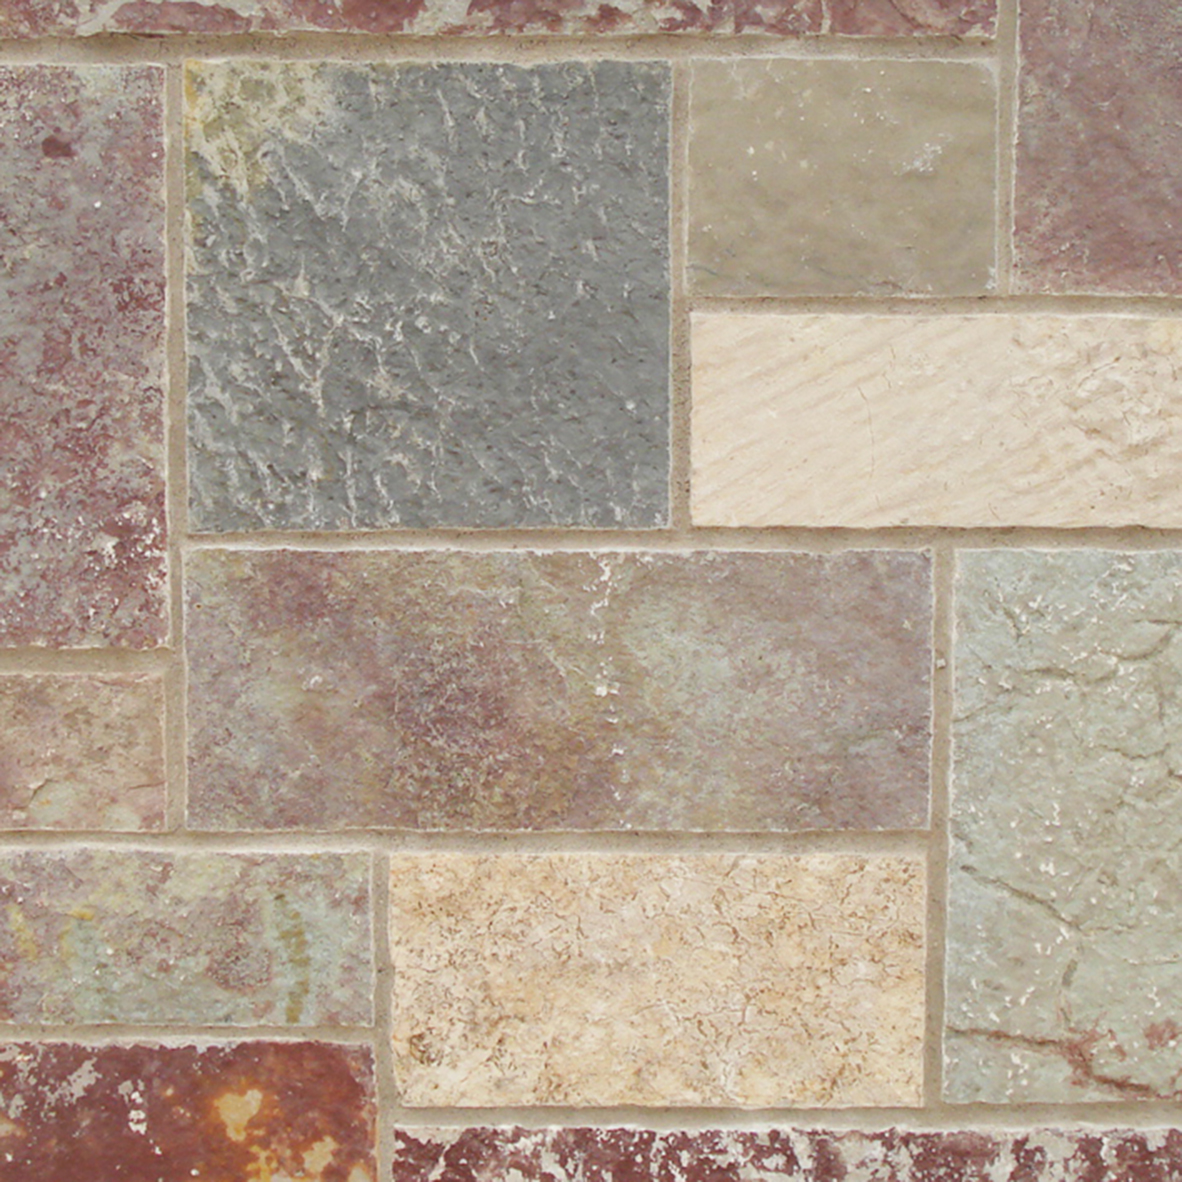 Stone Properties Rustic Royal Chateau Is A Non Dimensional Blend Made Up Of 100 Natural Bedface Material Snapped On All 4 Sides And Offers